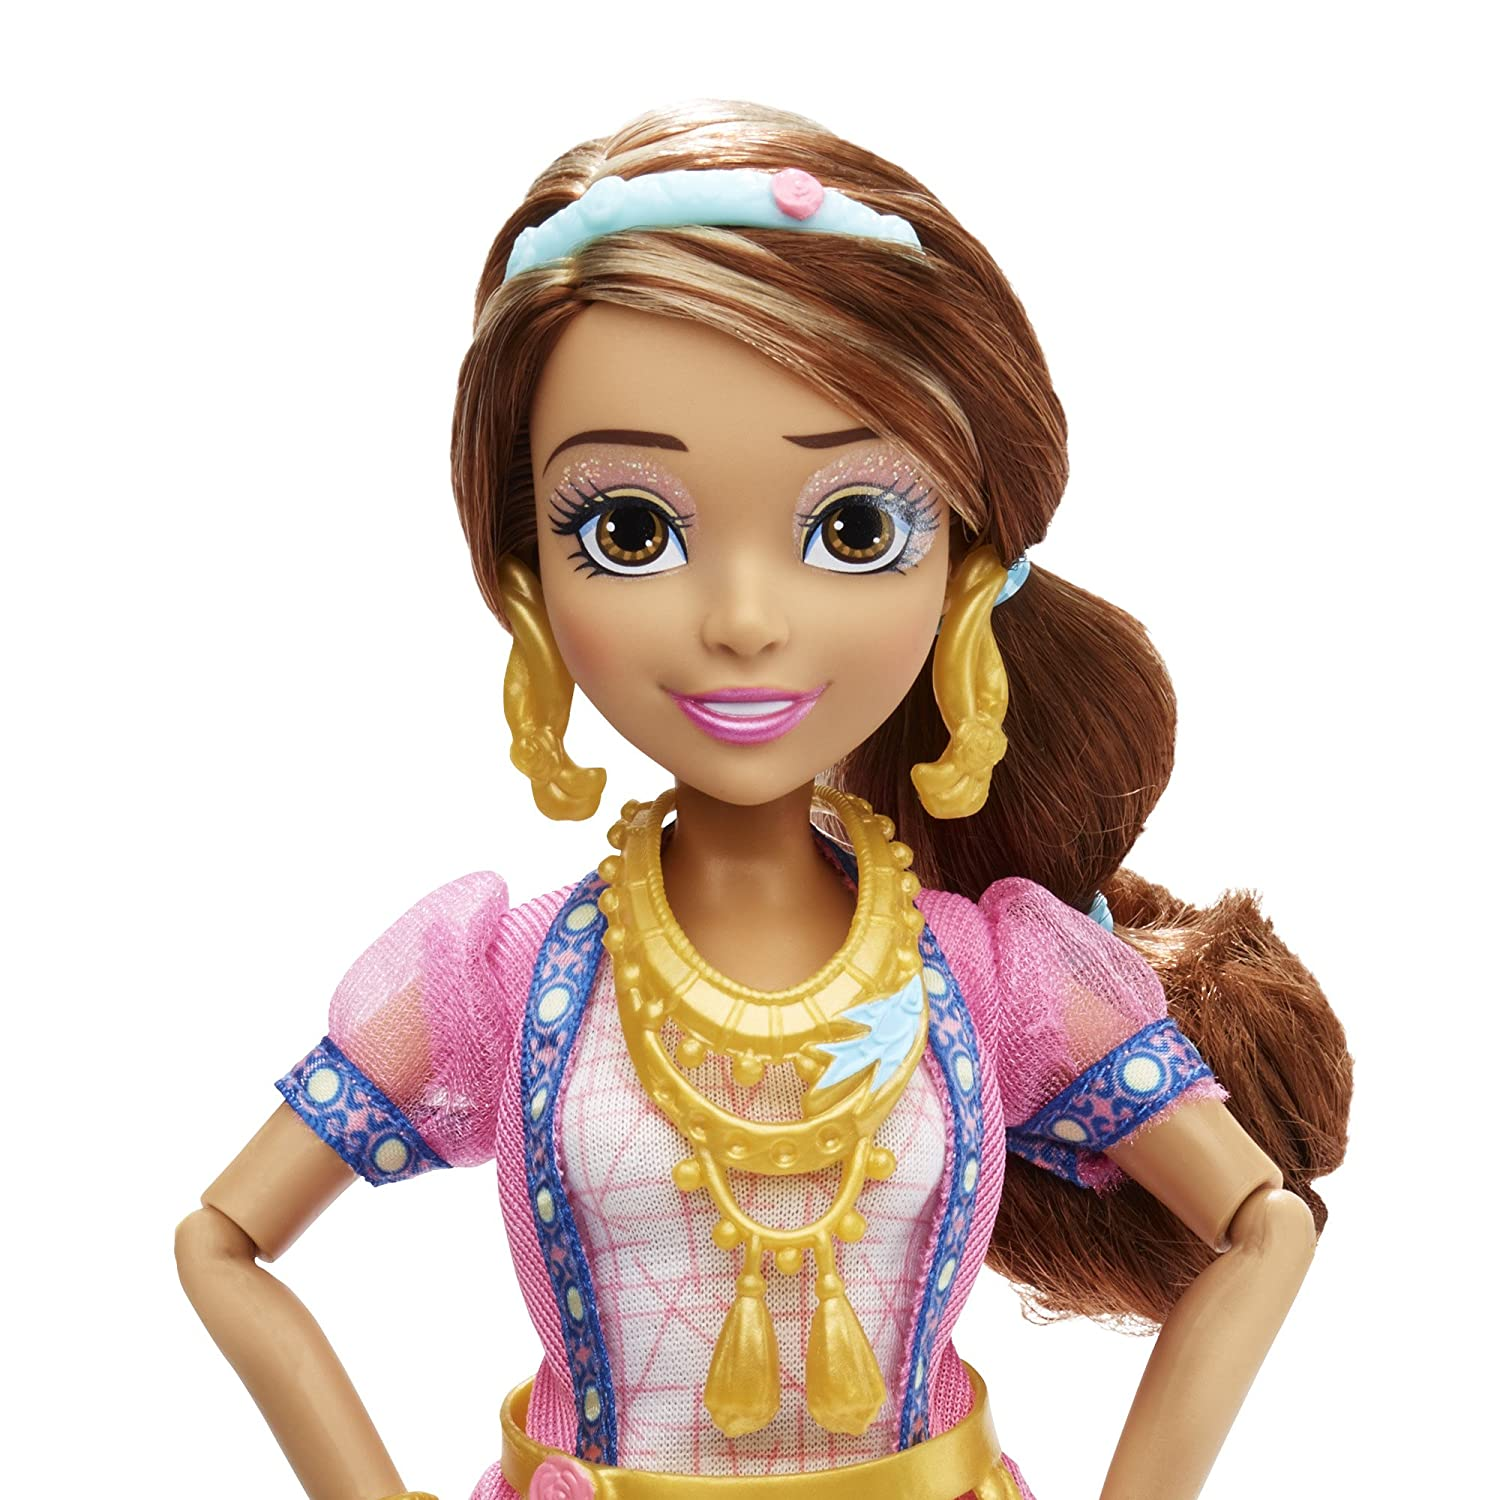 Amazon Disney Descendents Auradon Genie Chic Audrey Toys & Games